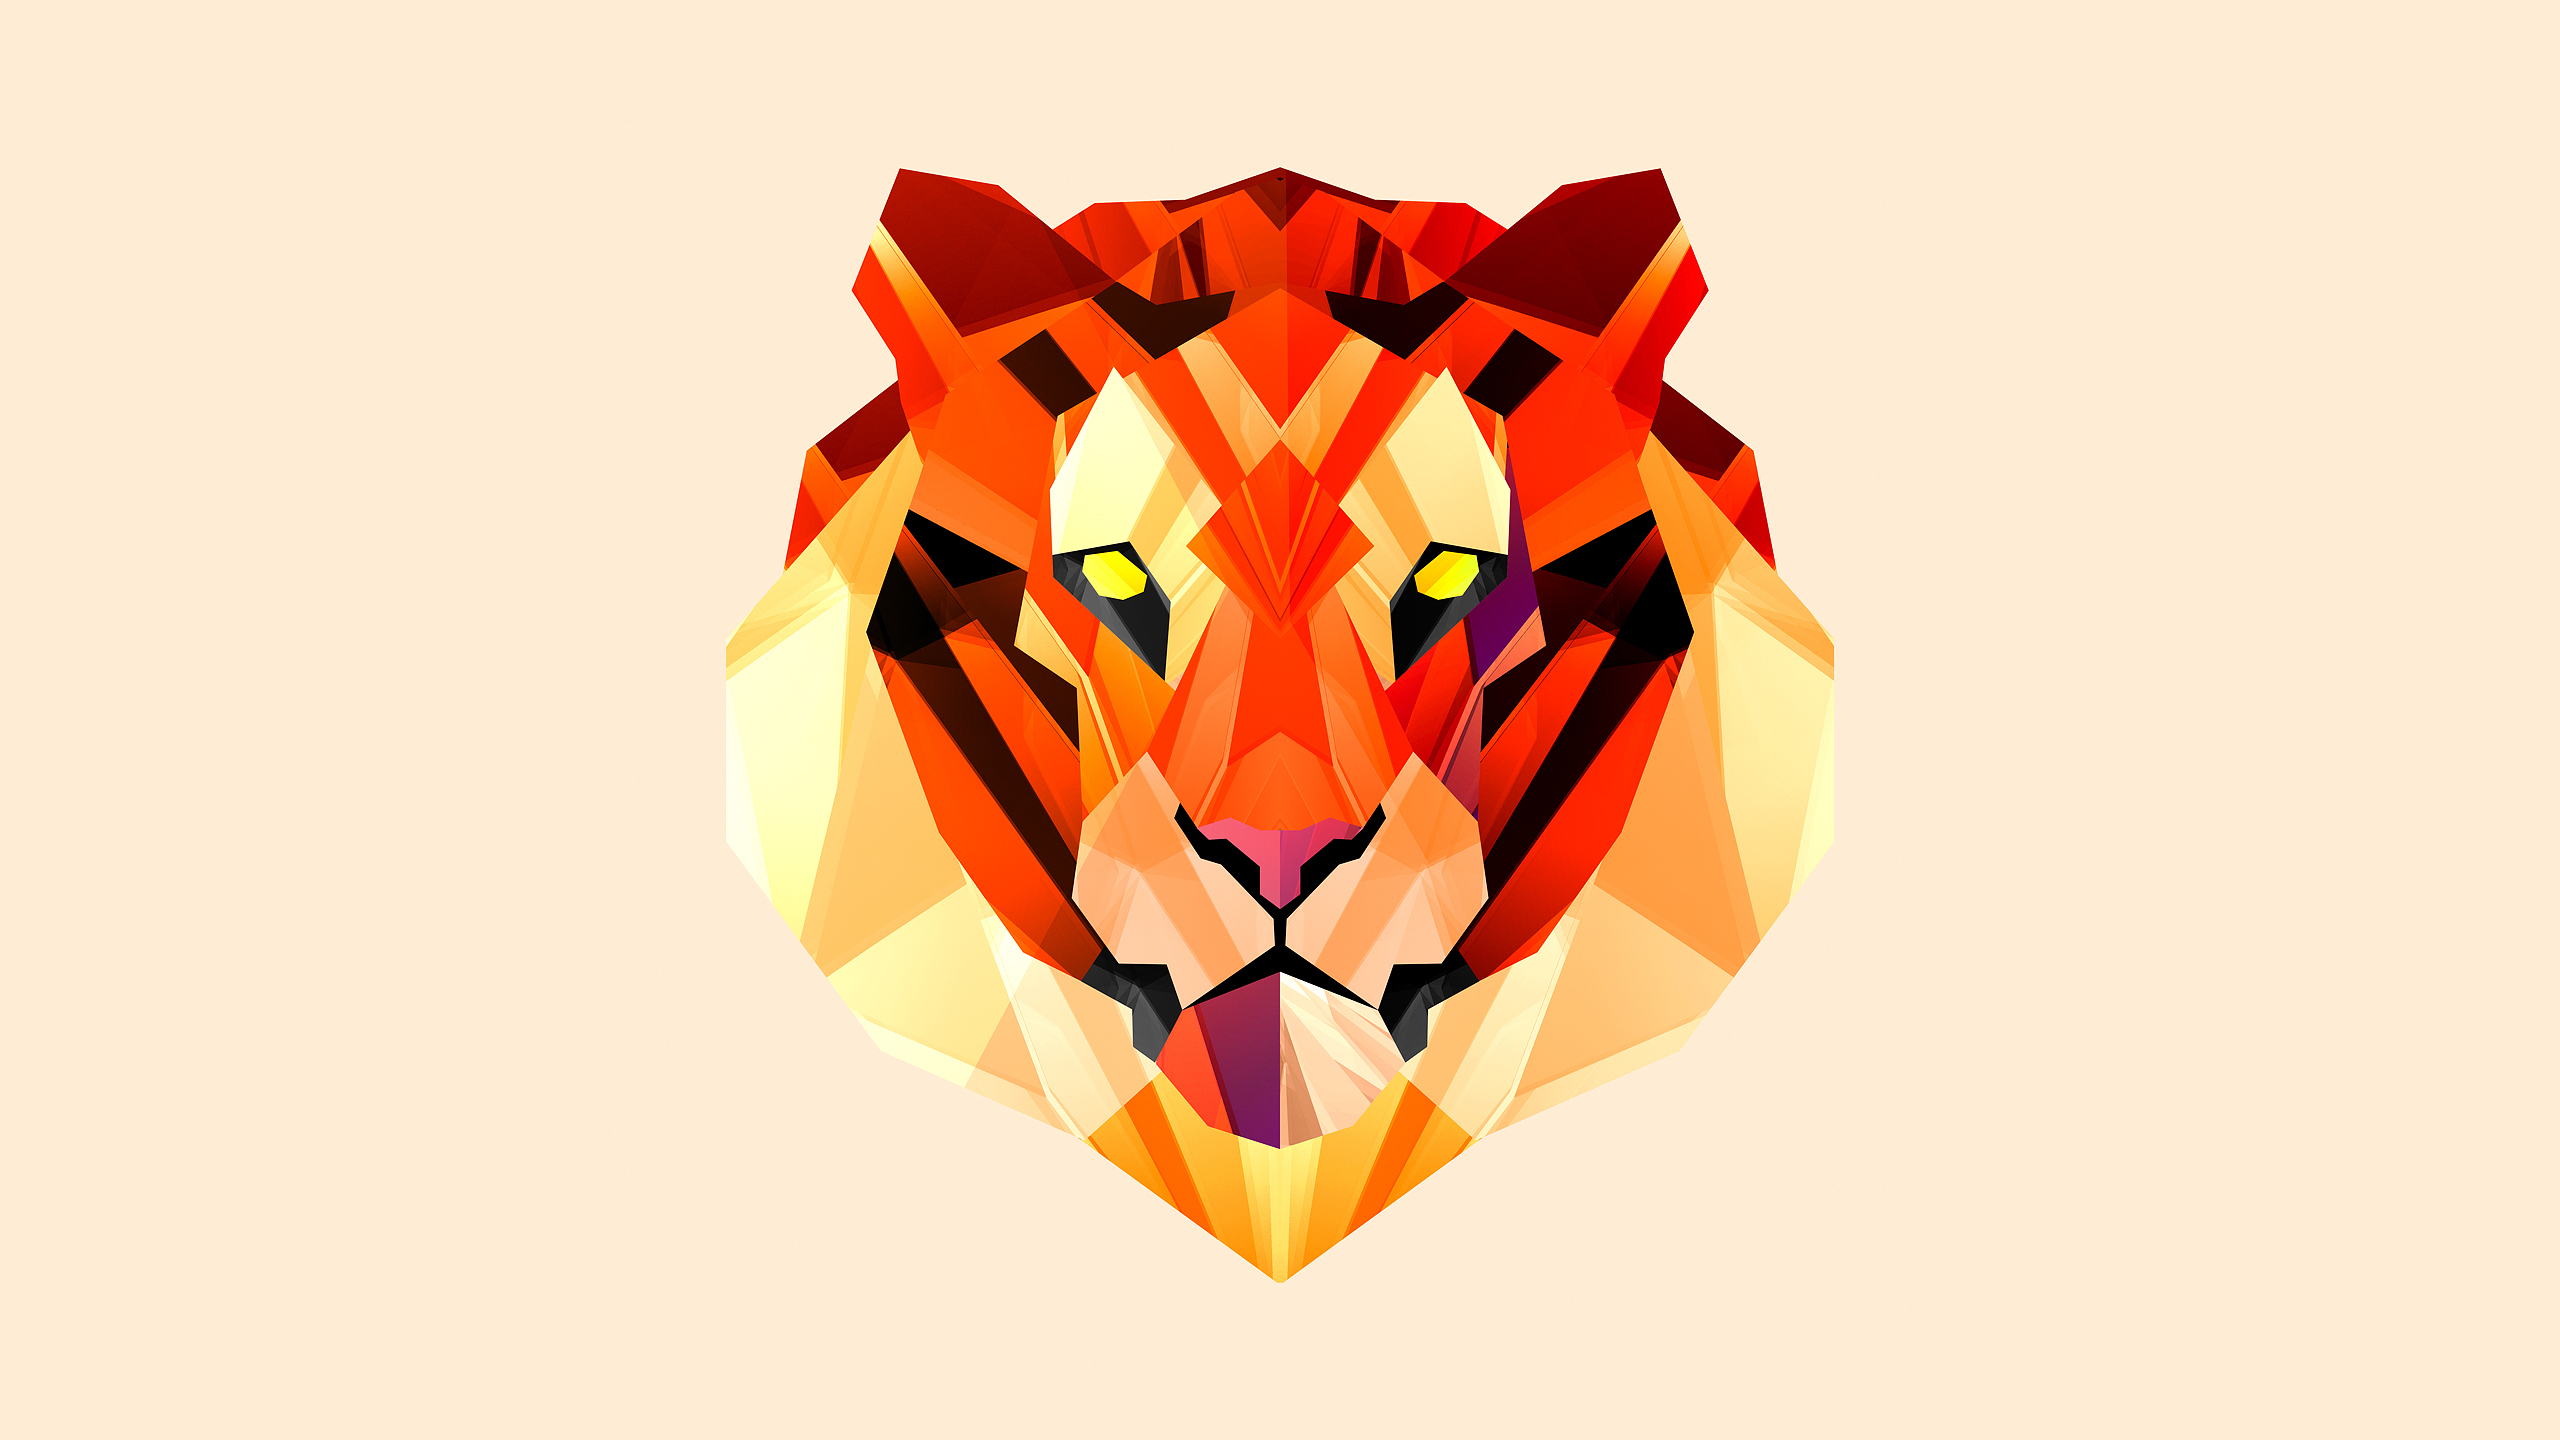 Geometric Animal Wallpaper The Art Mad Wallpapers 2560x1440